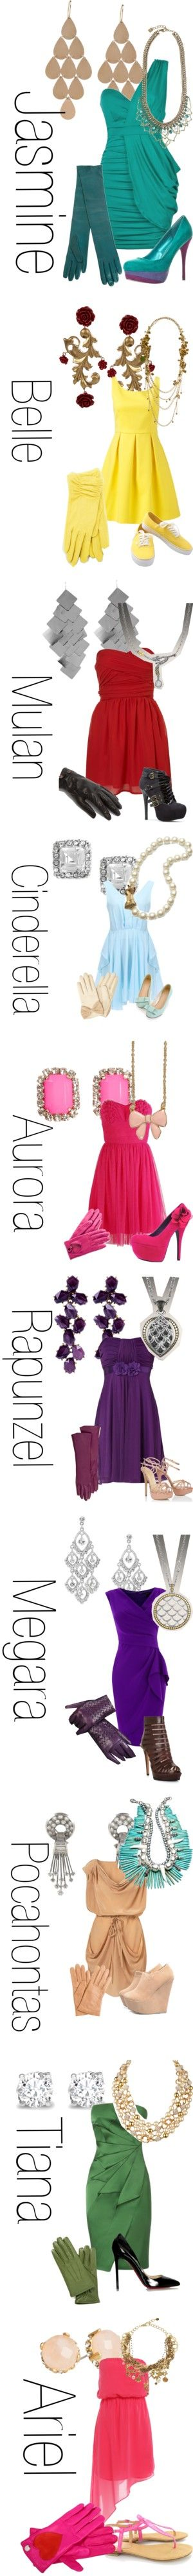 """Disney Princesses Cocktail Party"" by jchalo3 on Polyvore"